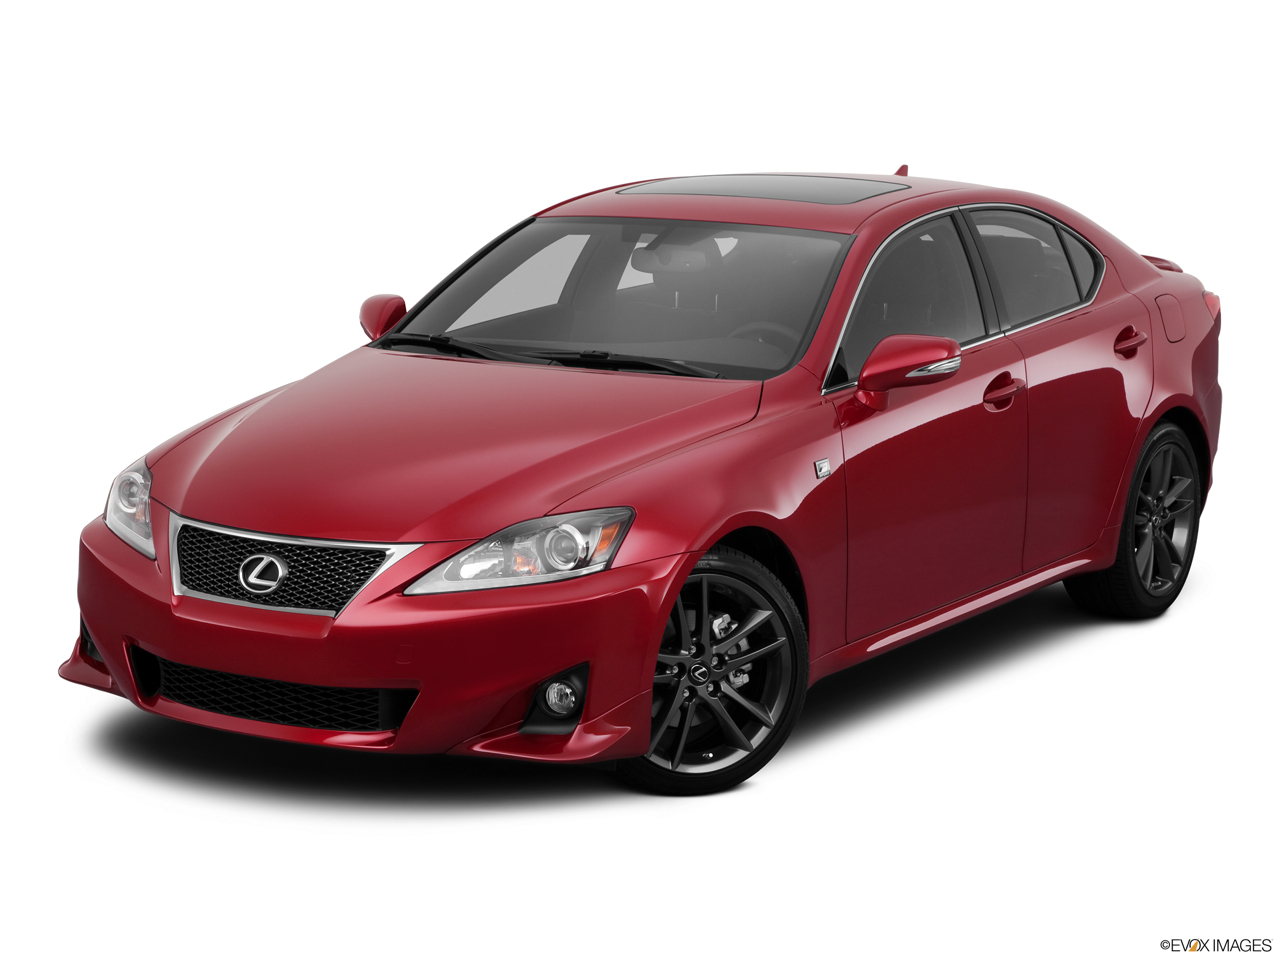 2011 Lexus IS 250 IS250 Front angle view.